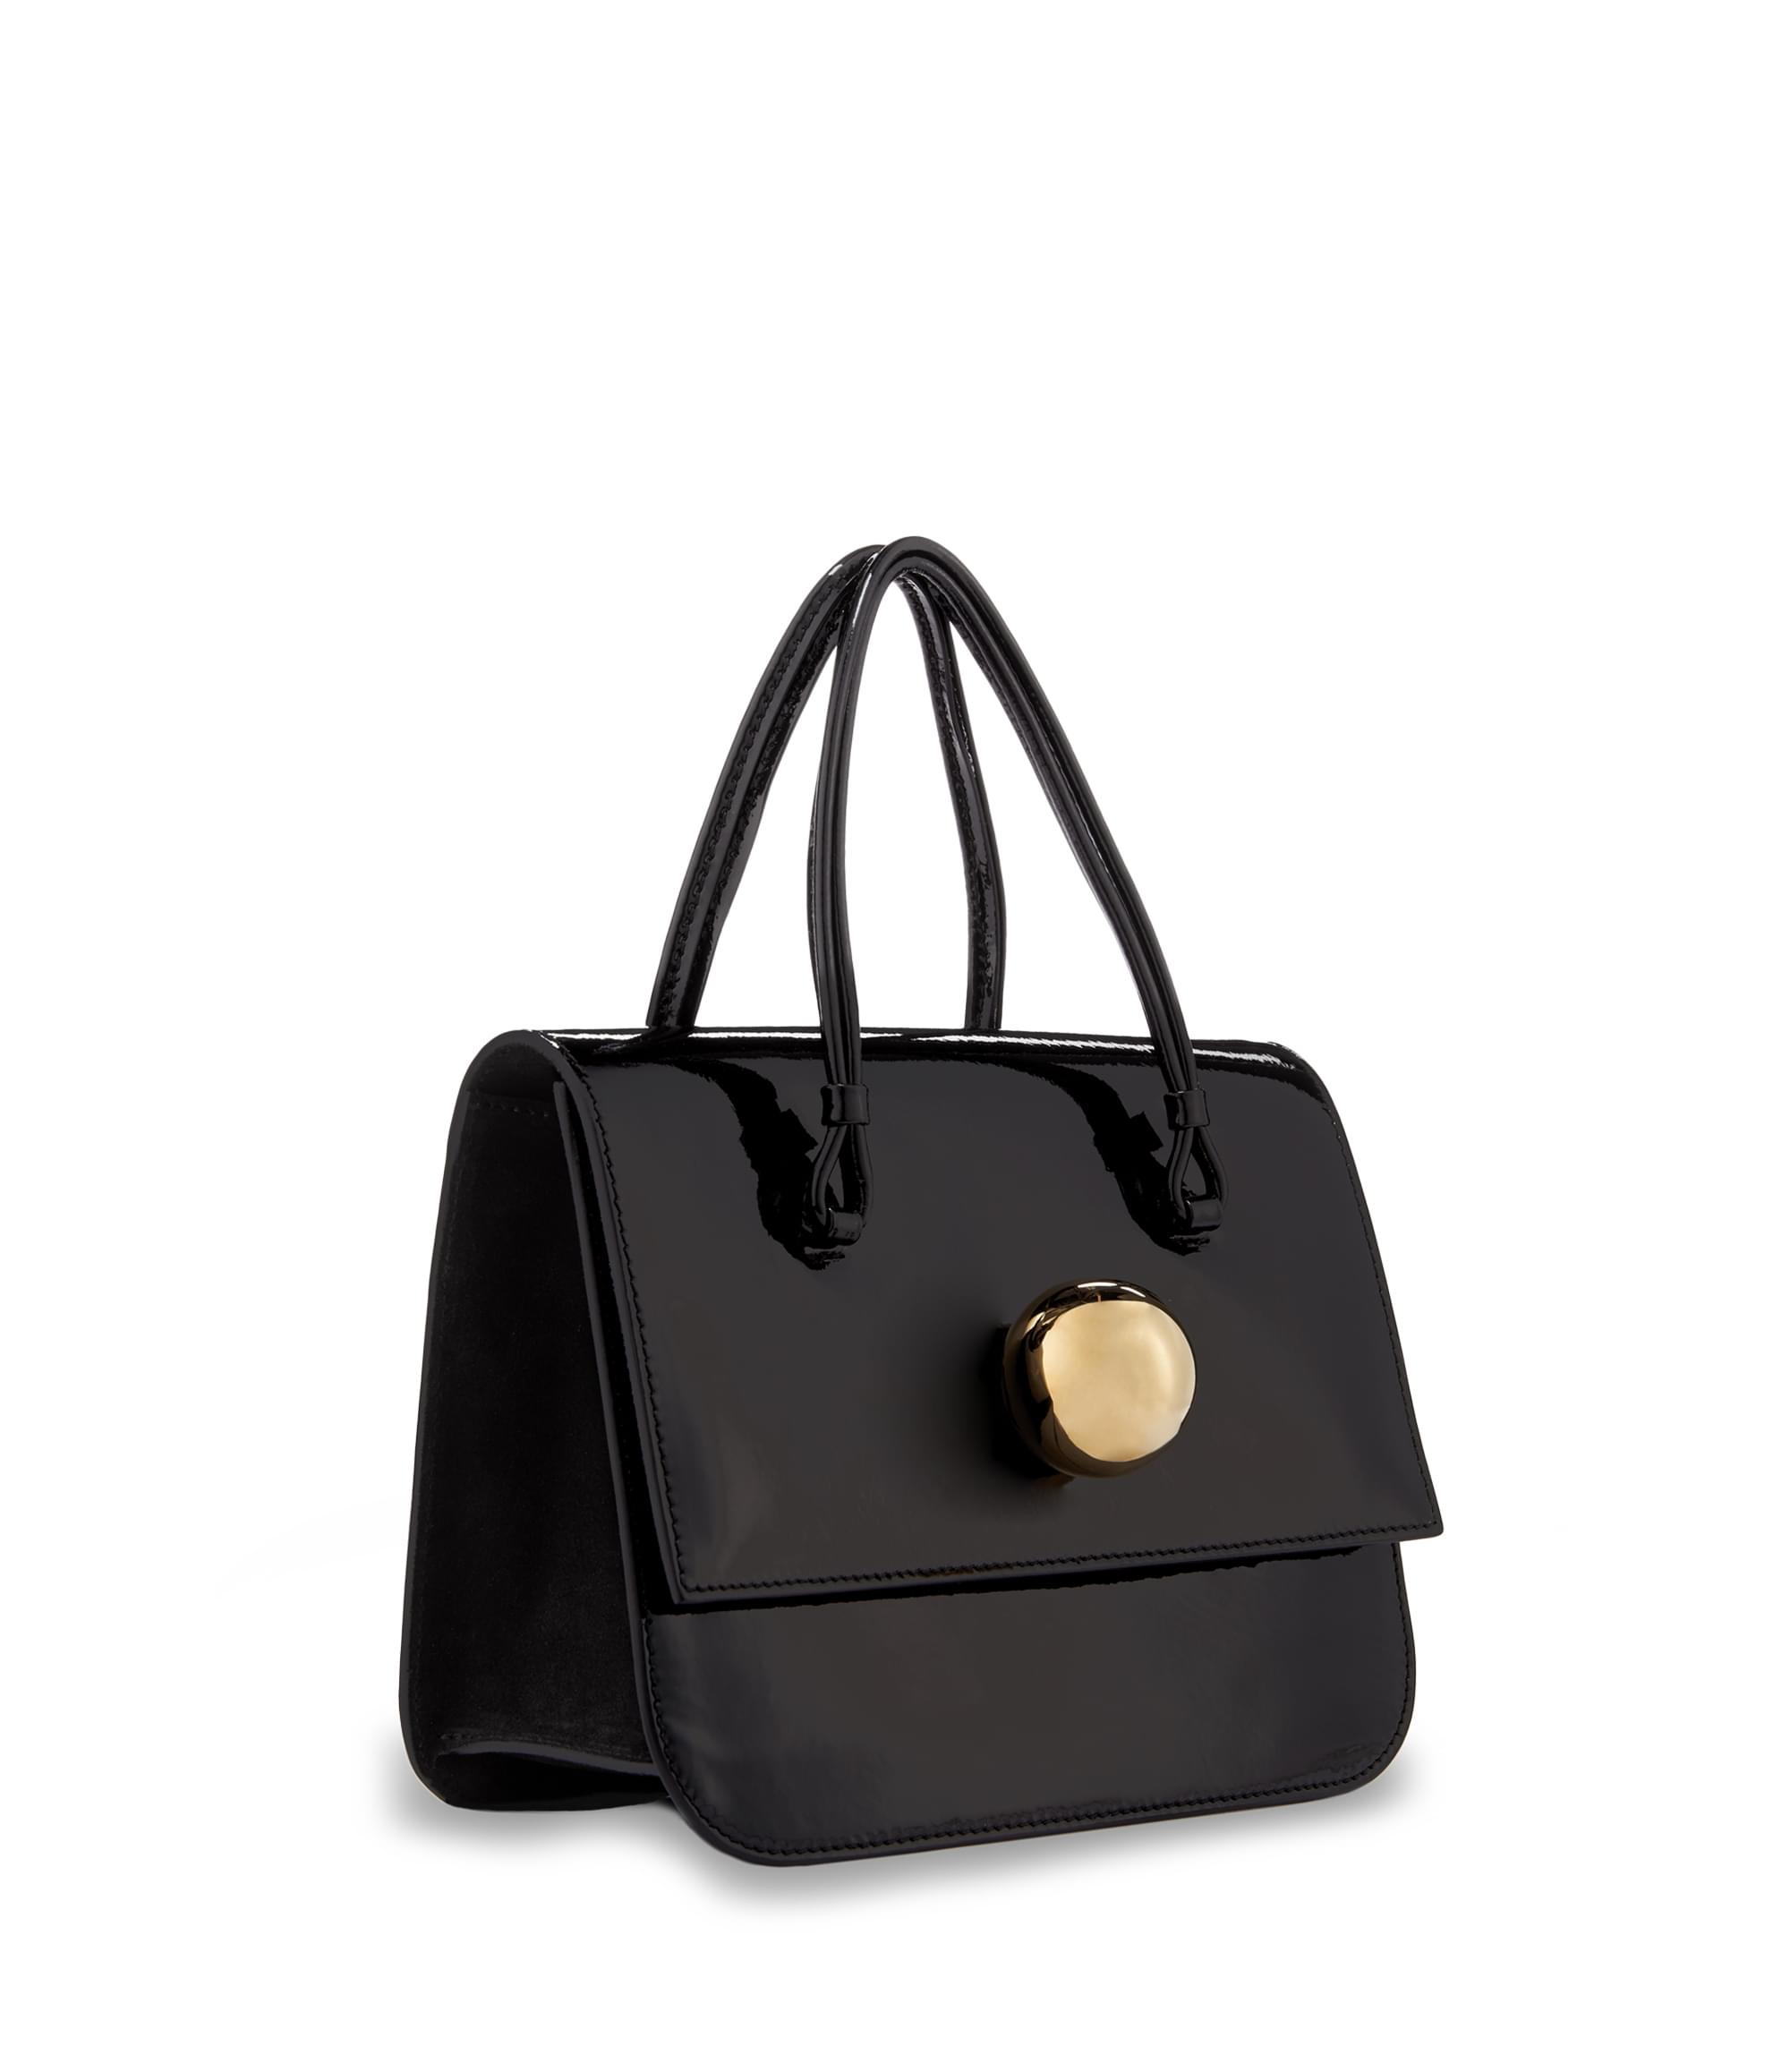 Vivienne Westwood Black Mirror Ball Bag 7212